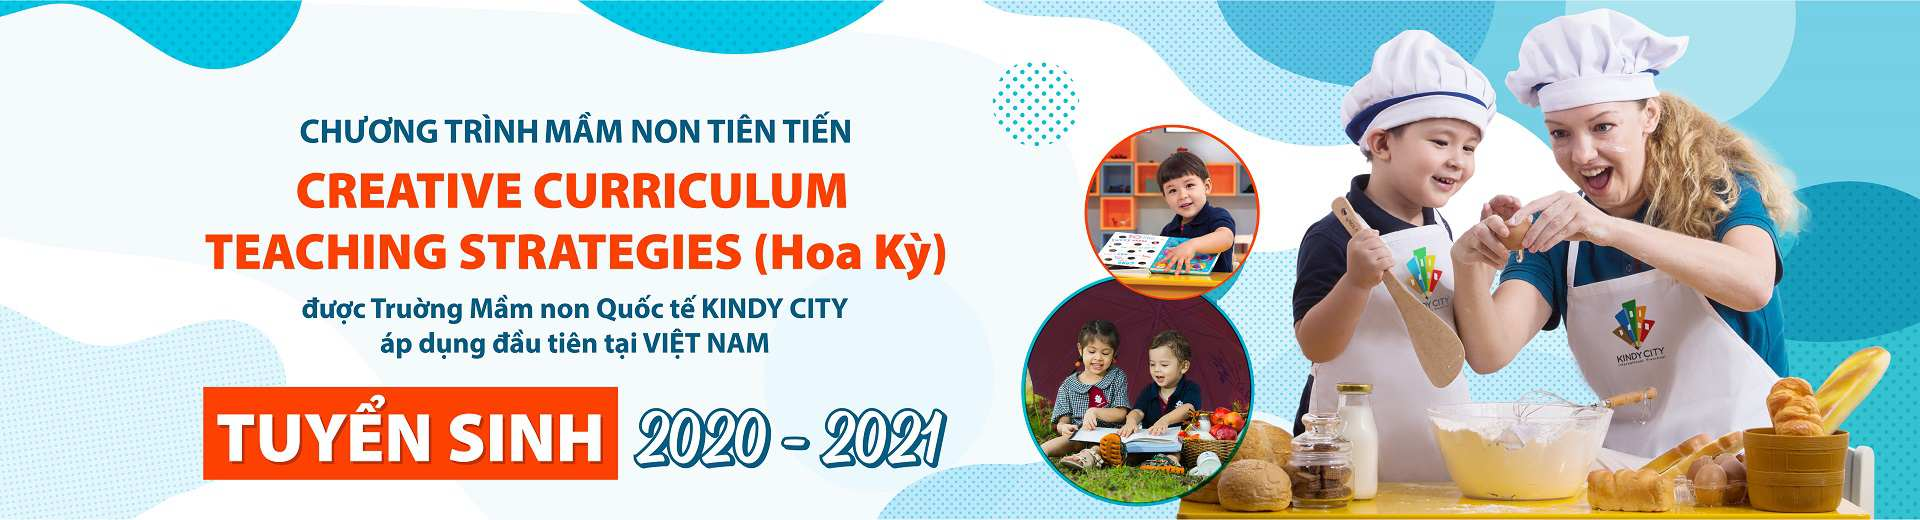 truong-mam-non-quoc-te-kindy-city